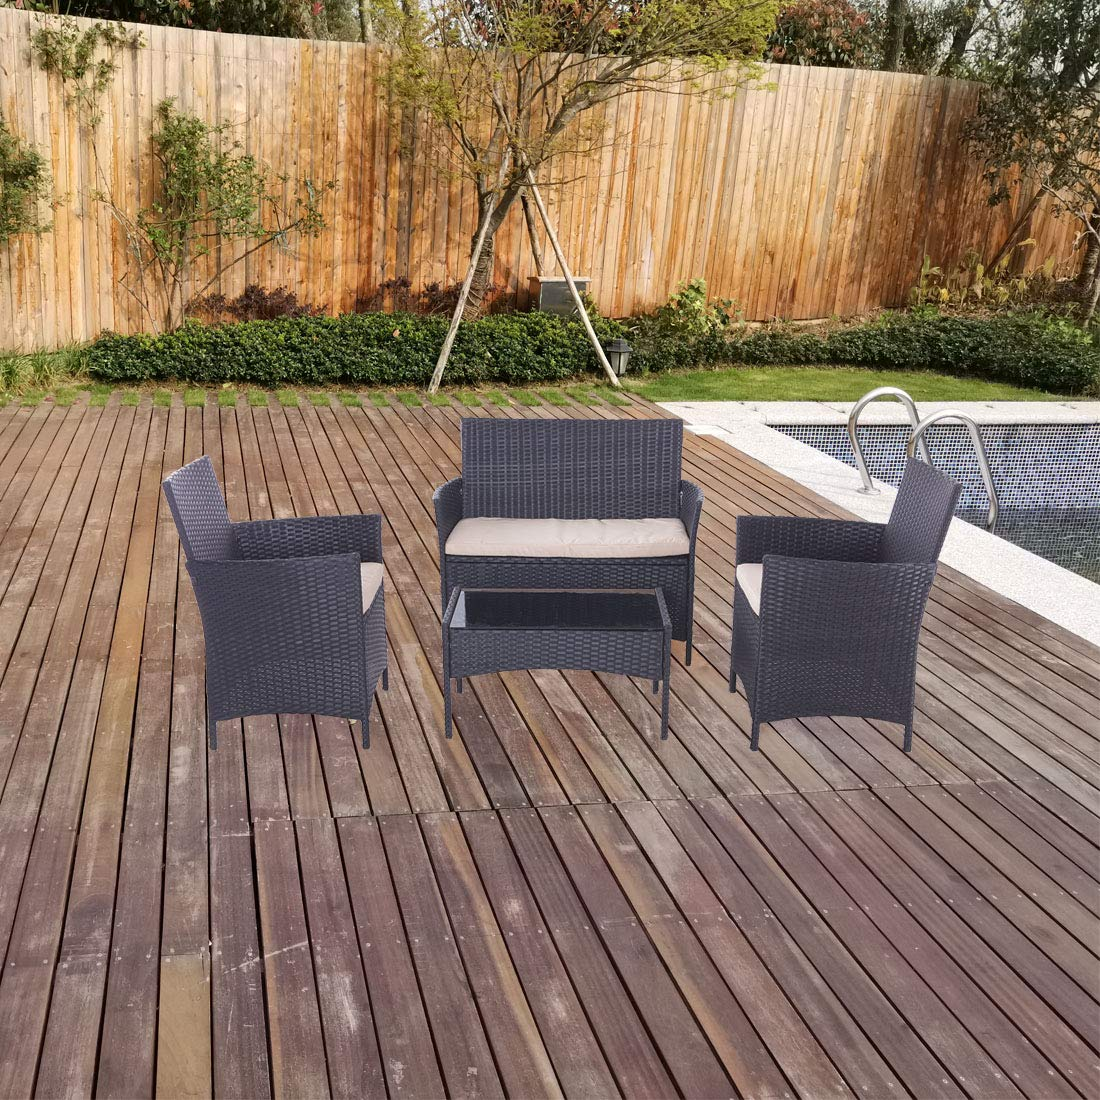 United Flame Cafe sets 3 Pieces Outdoor Patio Furniture Sets Black Rattan Chair Wicker Set Backyard Porch Lawn Garden Balcony Furniture Set with Cushions and Glass Table All Weather RTA Furniture Sets